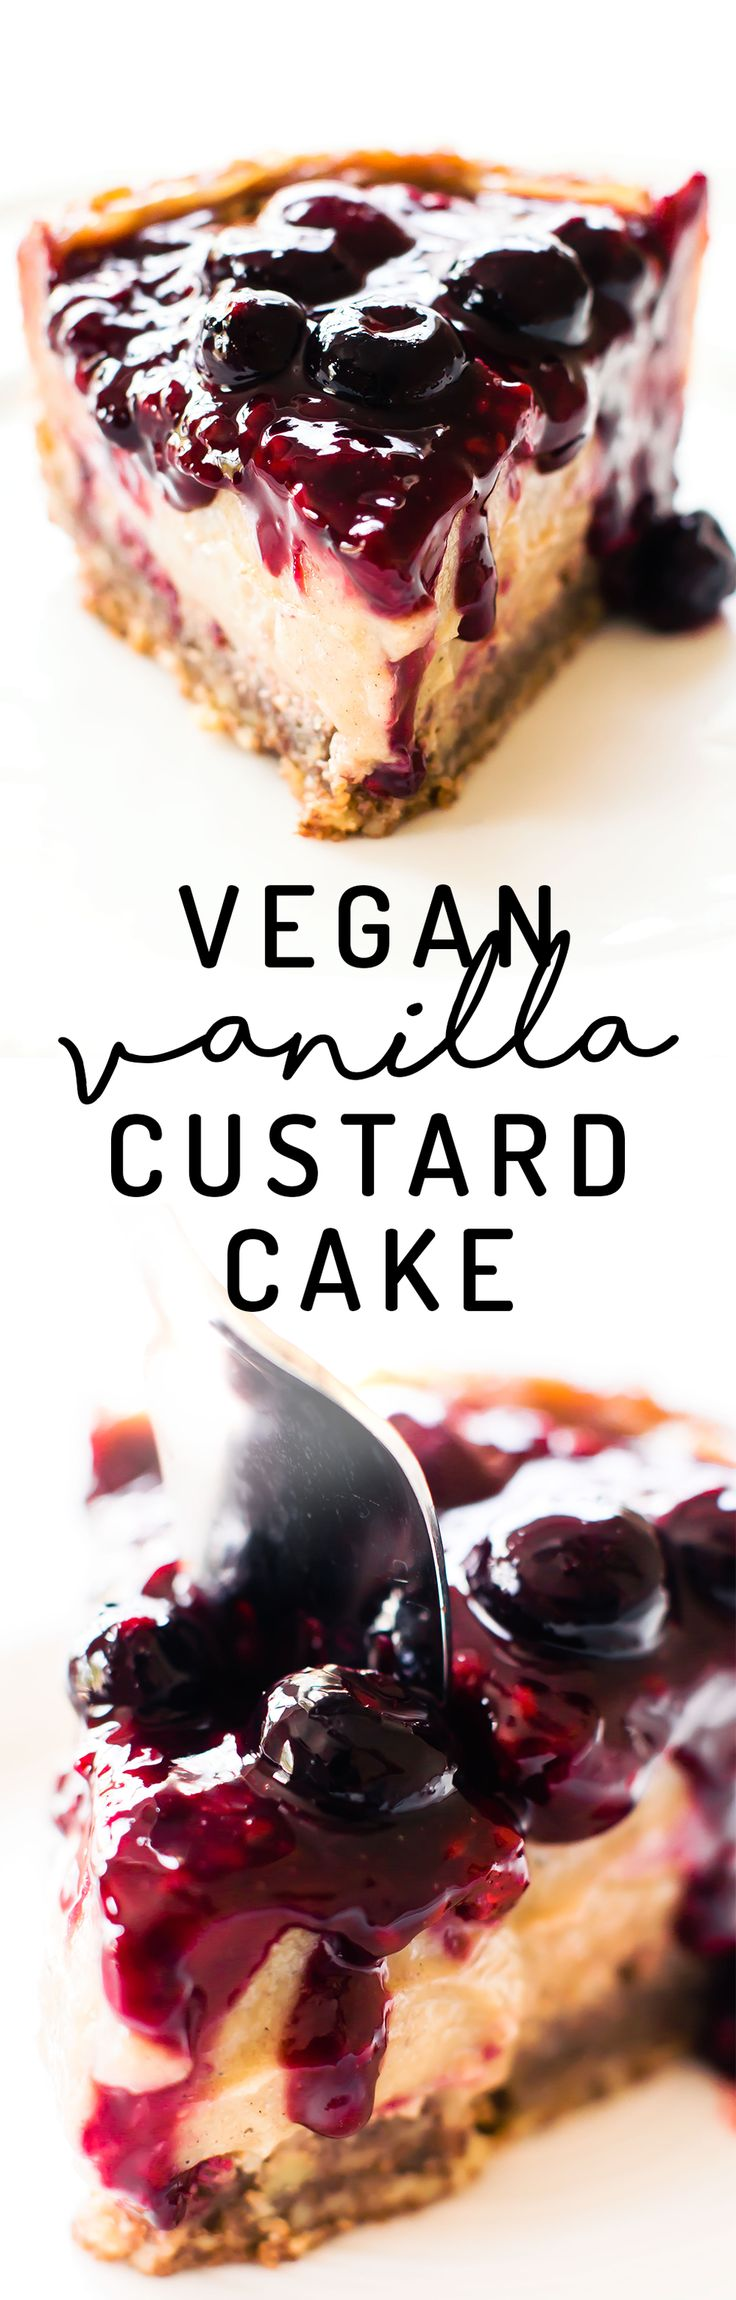 Dreamy meets healthy in this Vegan Vanilla Custard Cake with 2-ingredient pecan crust, low-fat vanilla bean filling, and easy berry compote to top!